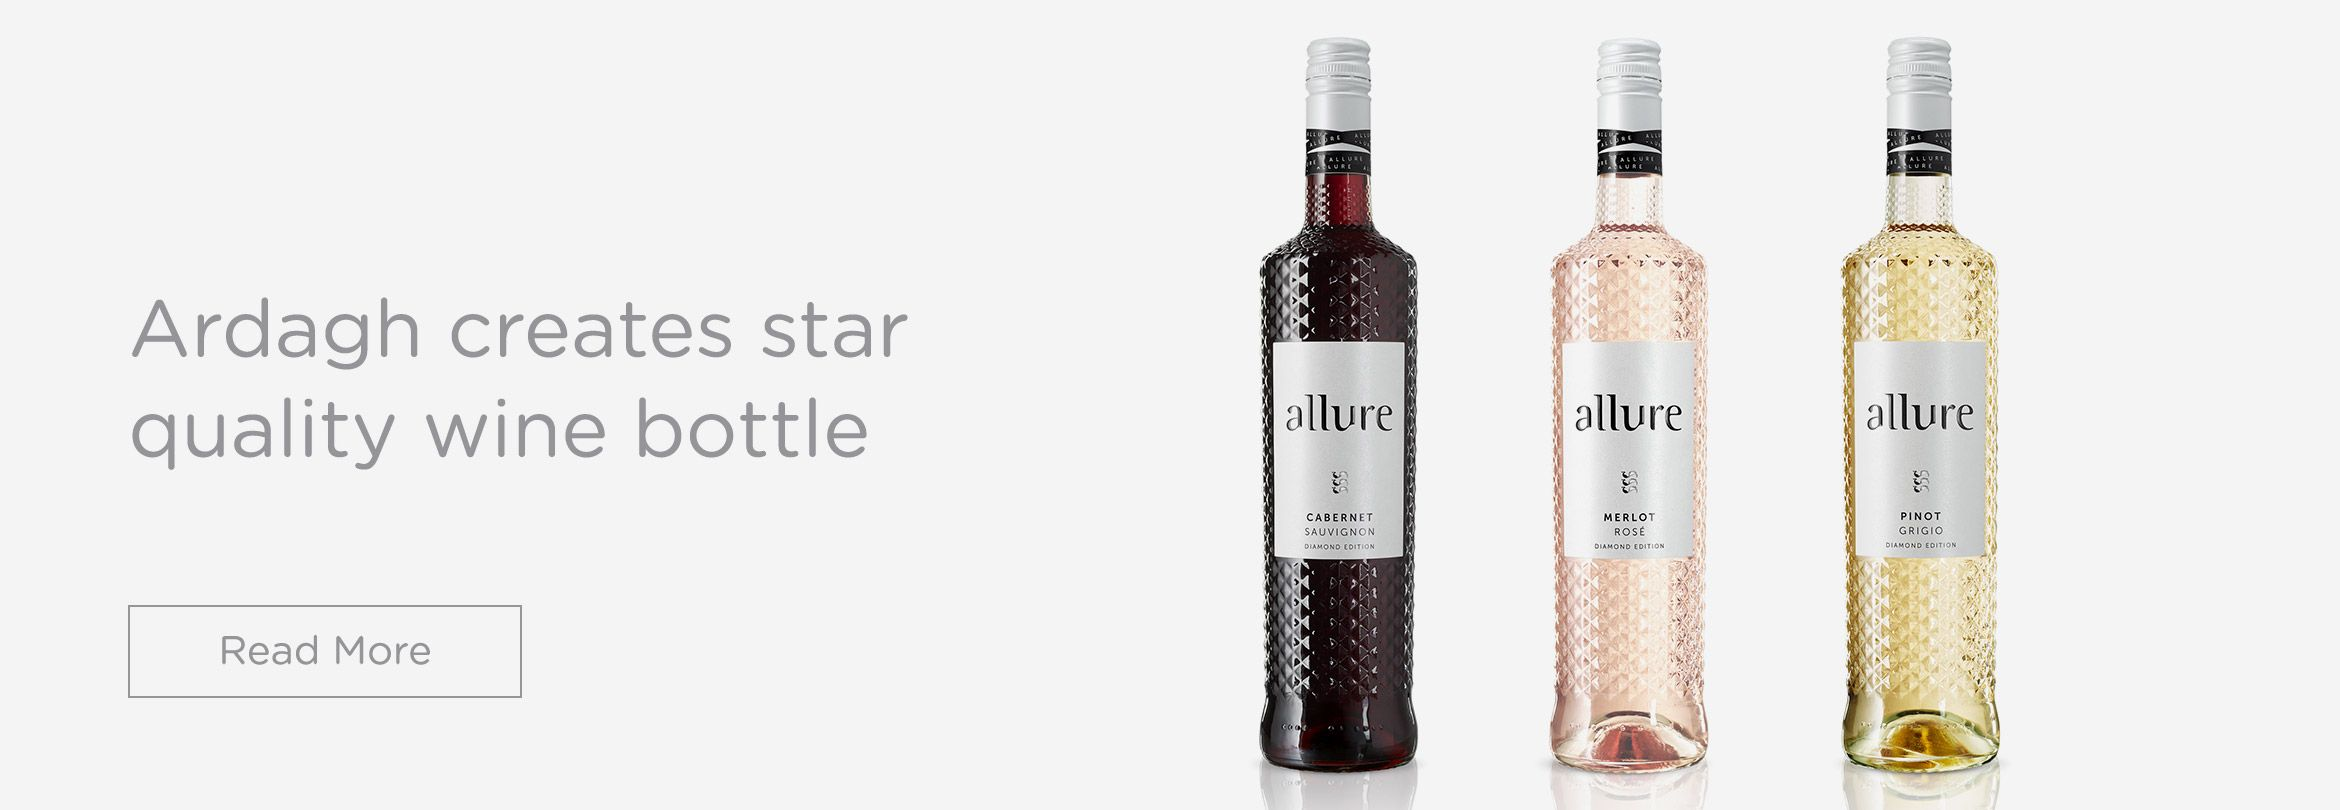 Ardagh Group creates wine bottle with star quality